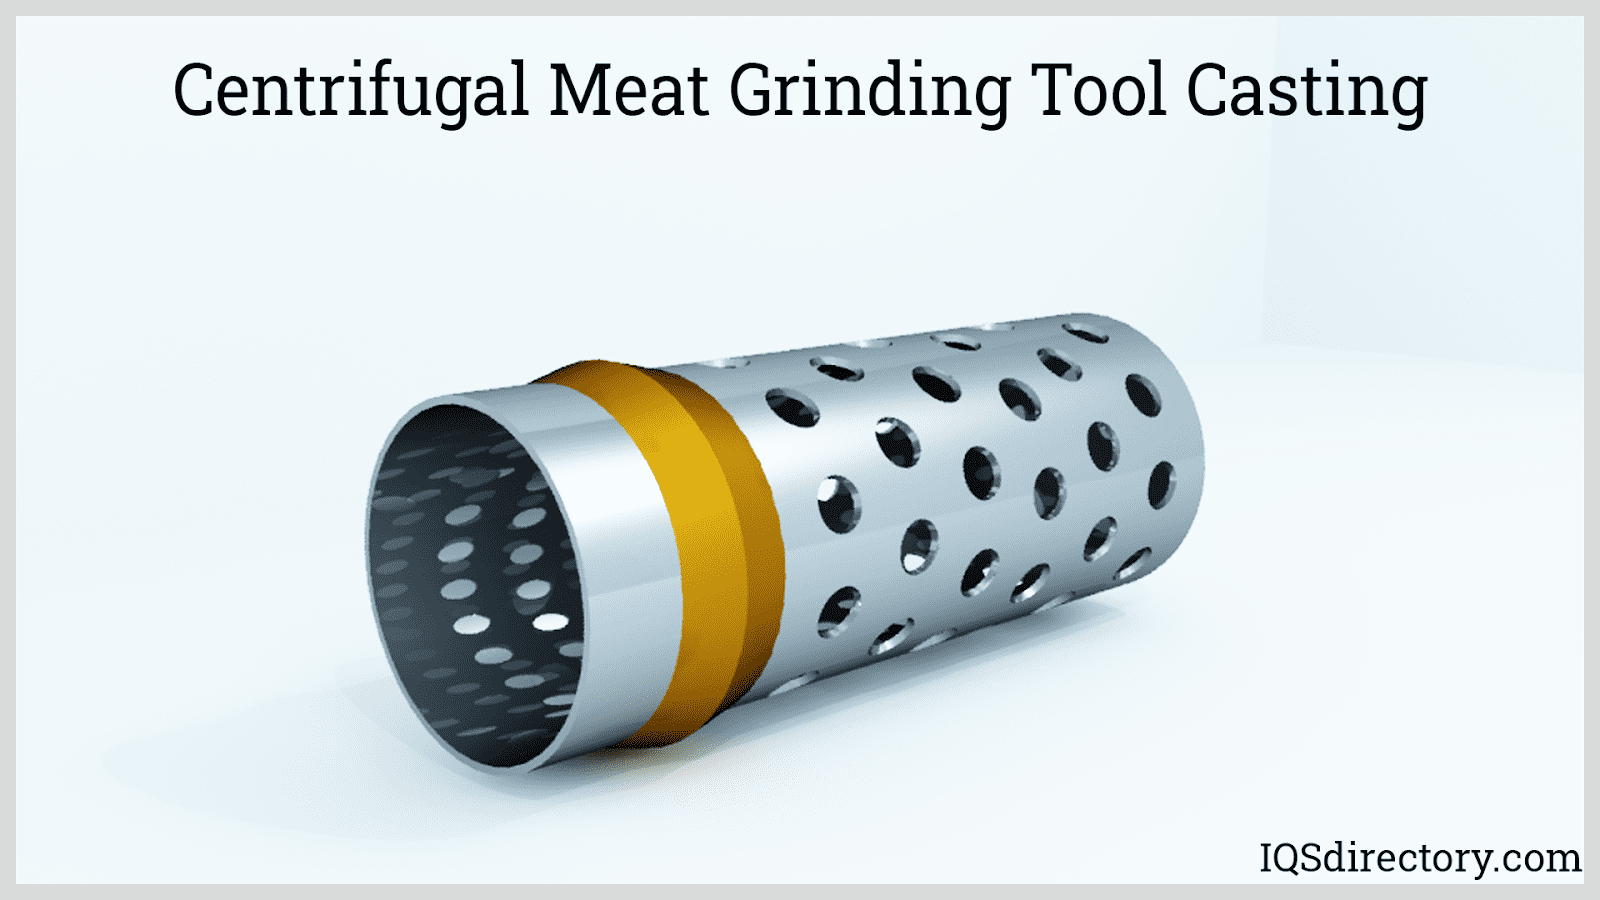 Centrifugal Meat Grinding Tool Casting